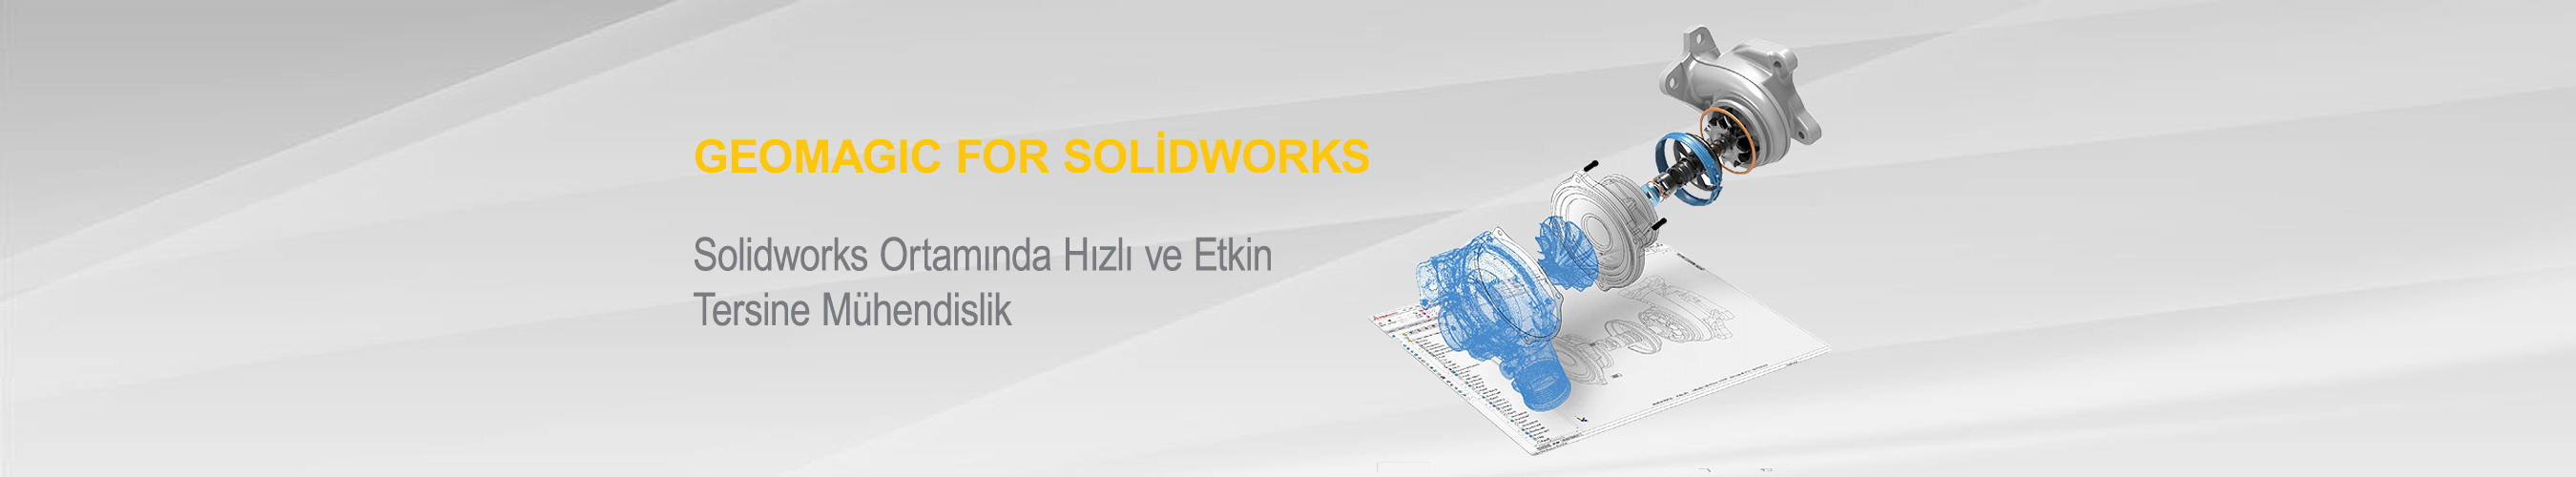 geomagic-for-solidwork-6